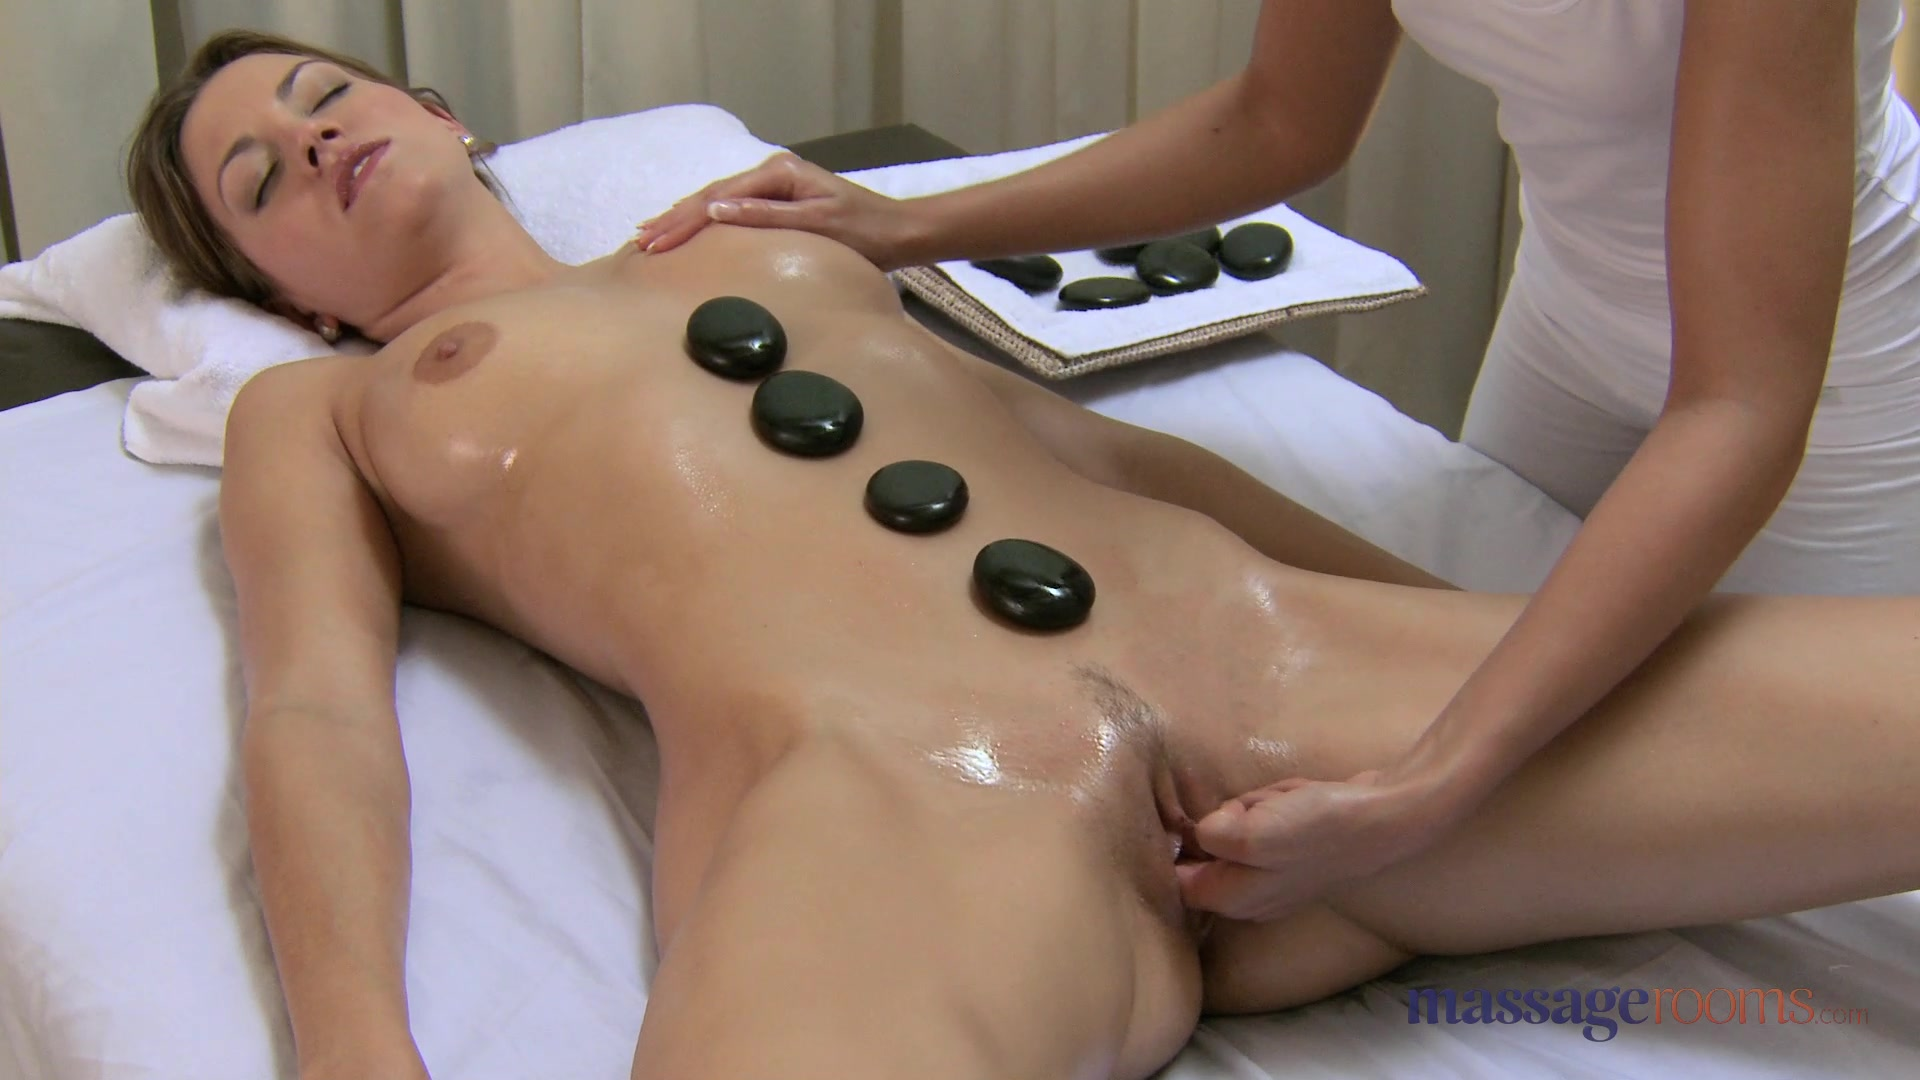 Blonde lesbian Lola does massage to a very horny boy C programming software for windows 7 64-bit